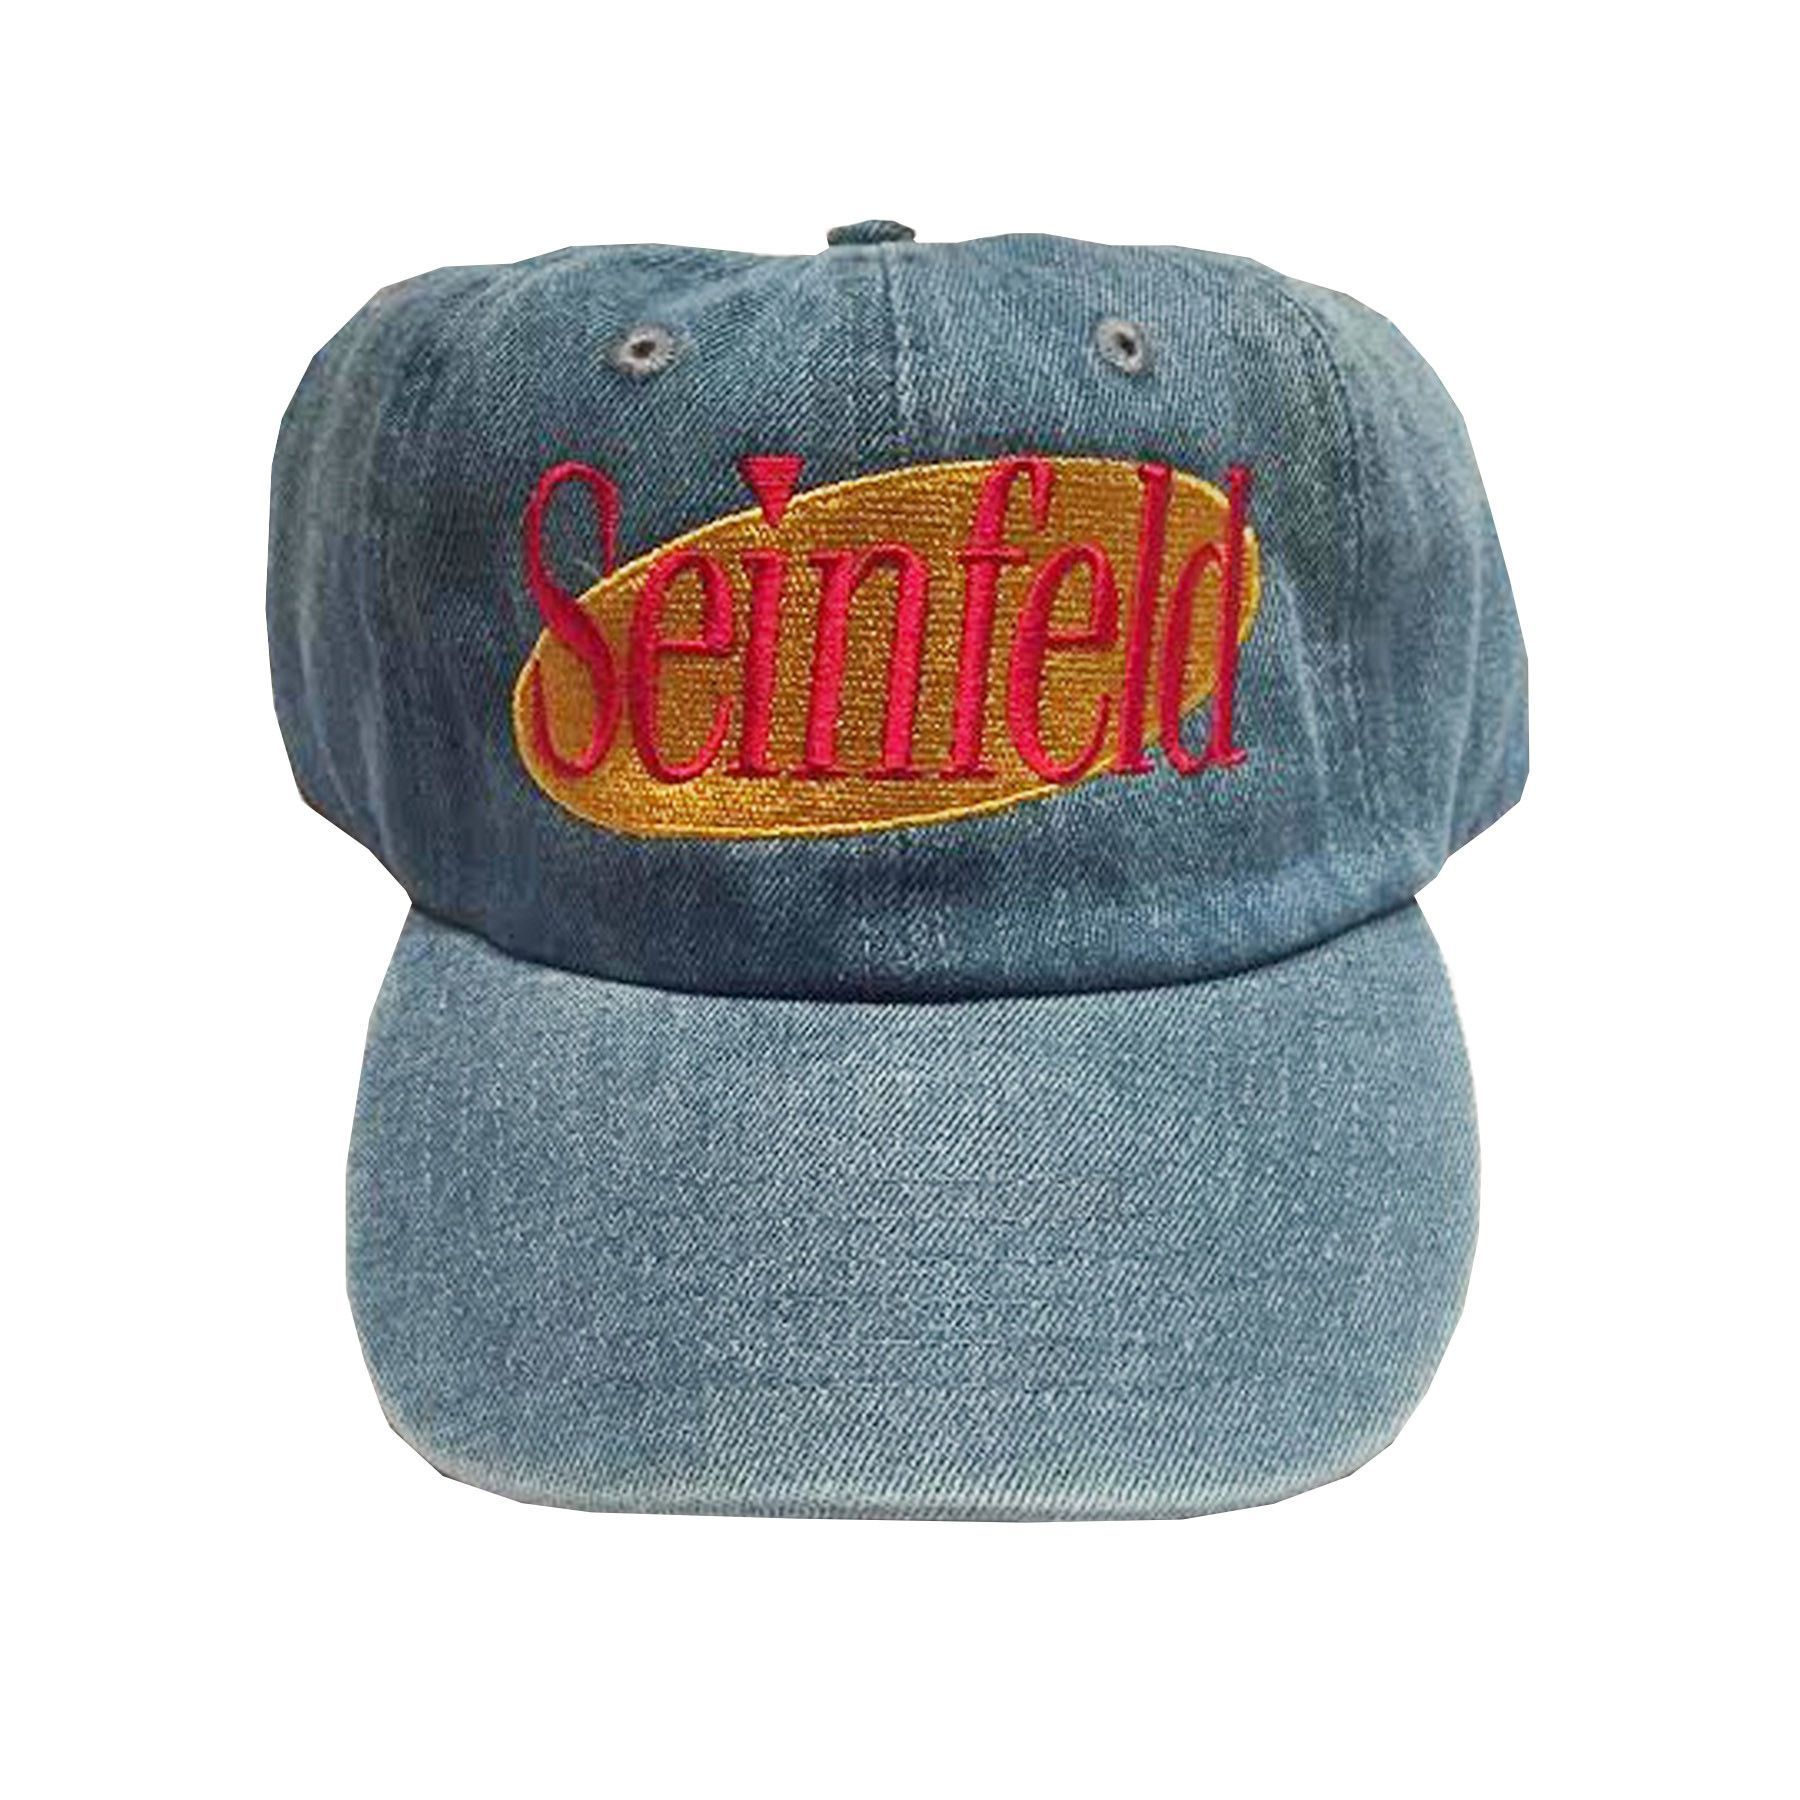 eeac4214fa0 Rock Hard Vintage Seinfeld Dad Hat In Denim